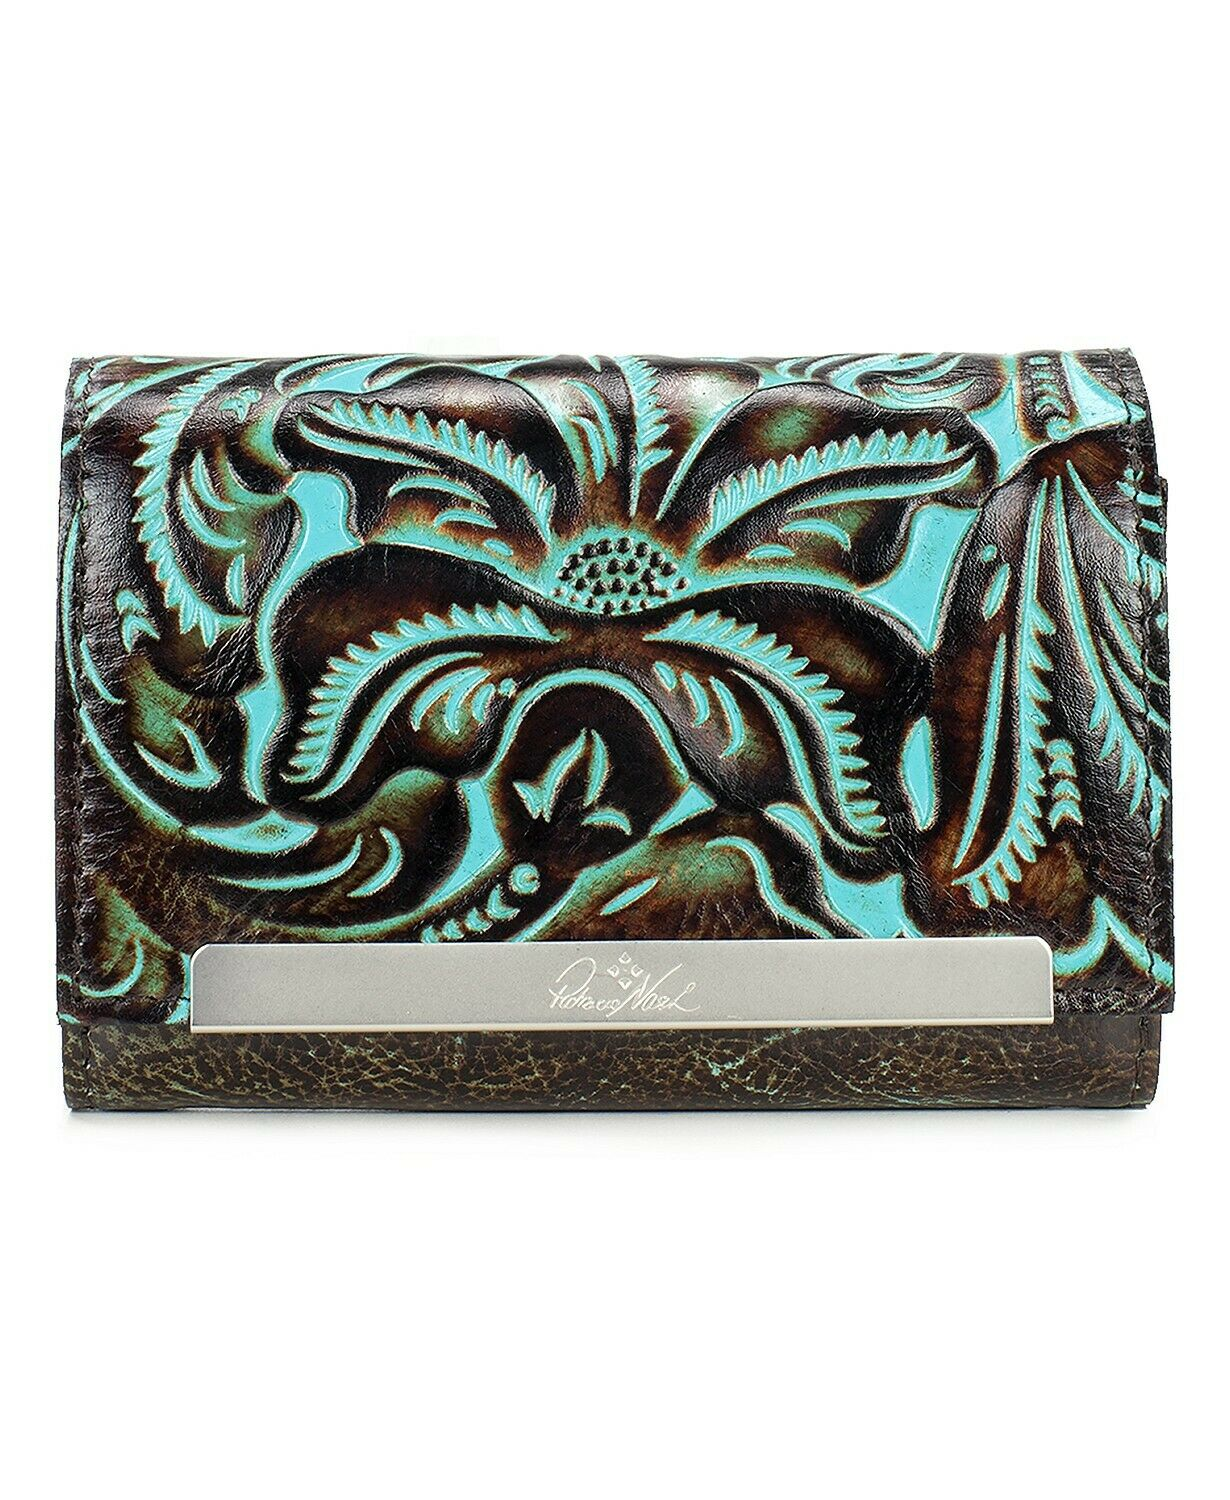 Patricia Nash NWOT Cametti Womens Leather Wallet-Tooled Turquoise RFID MSRP